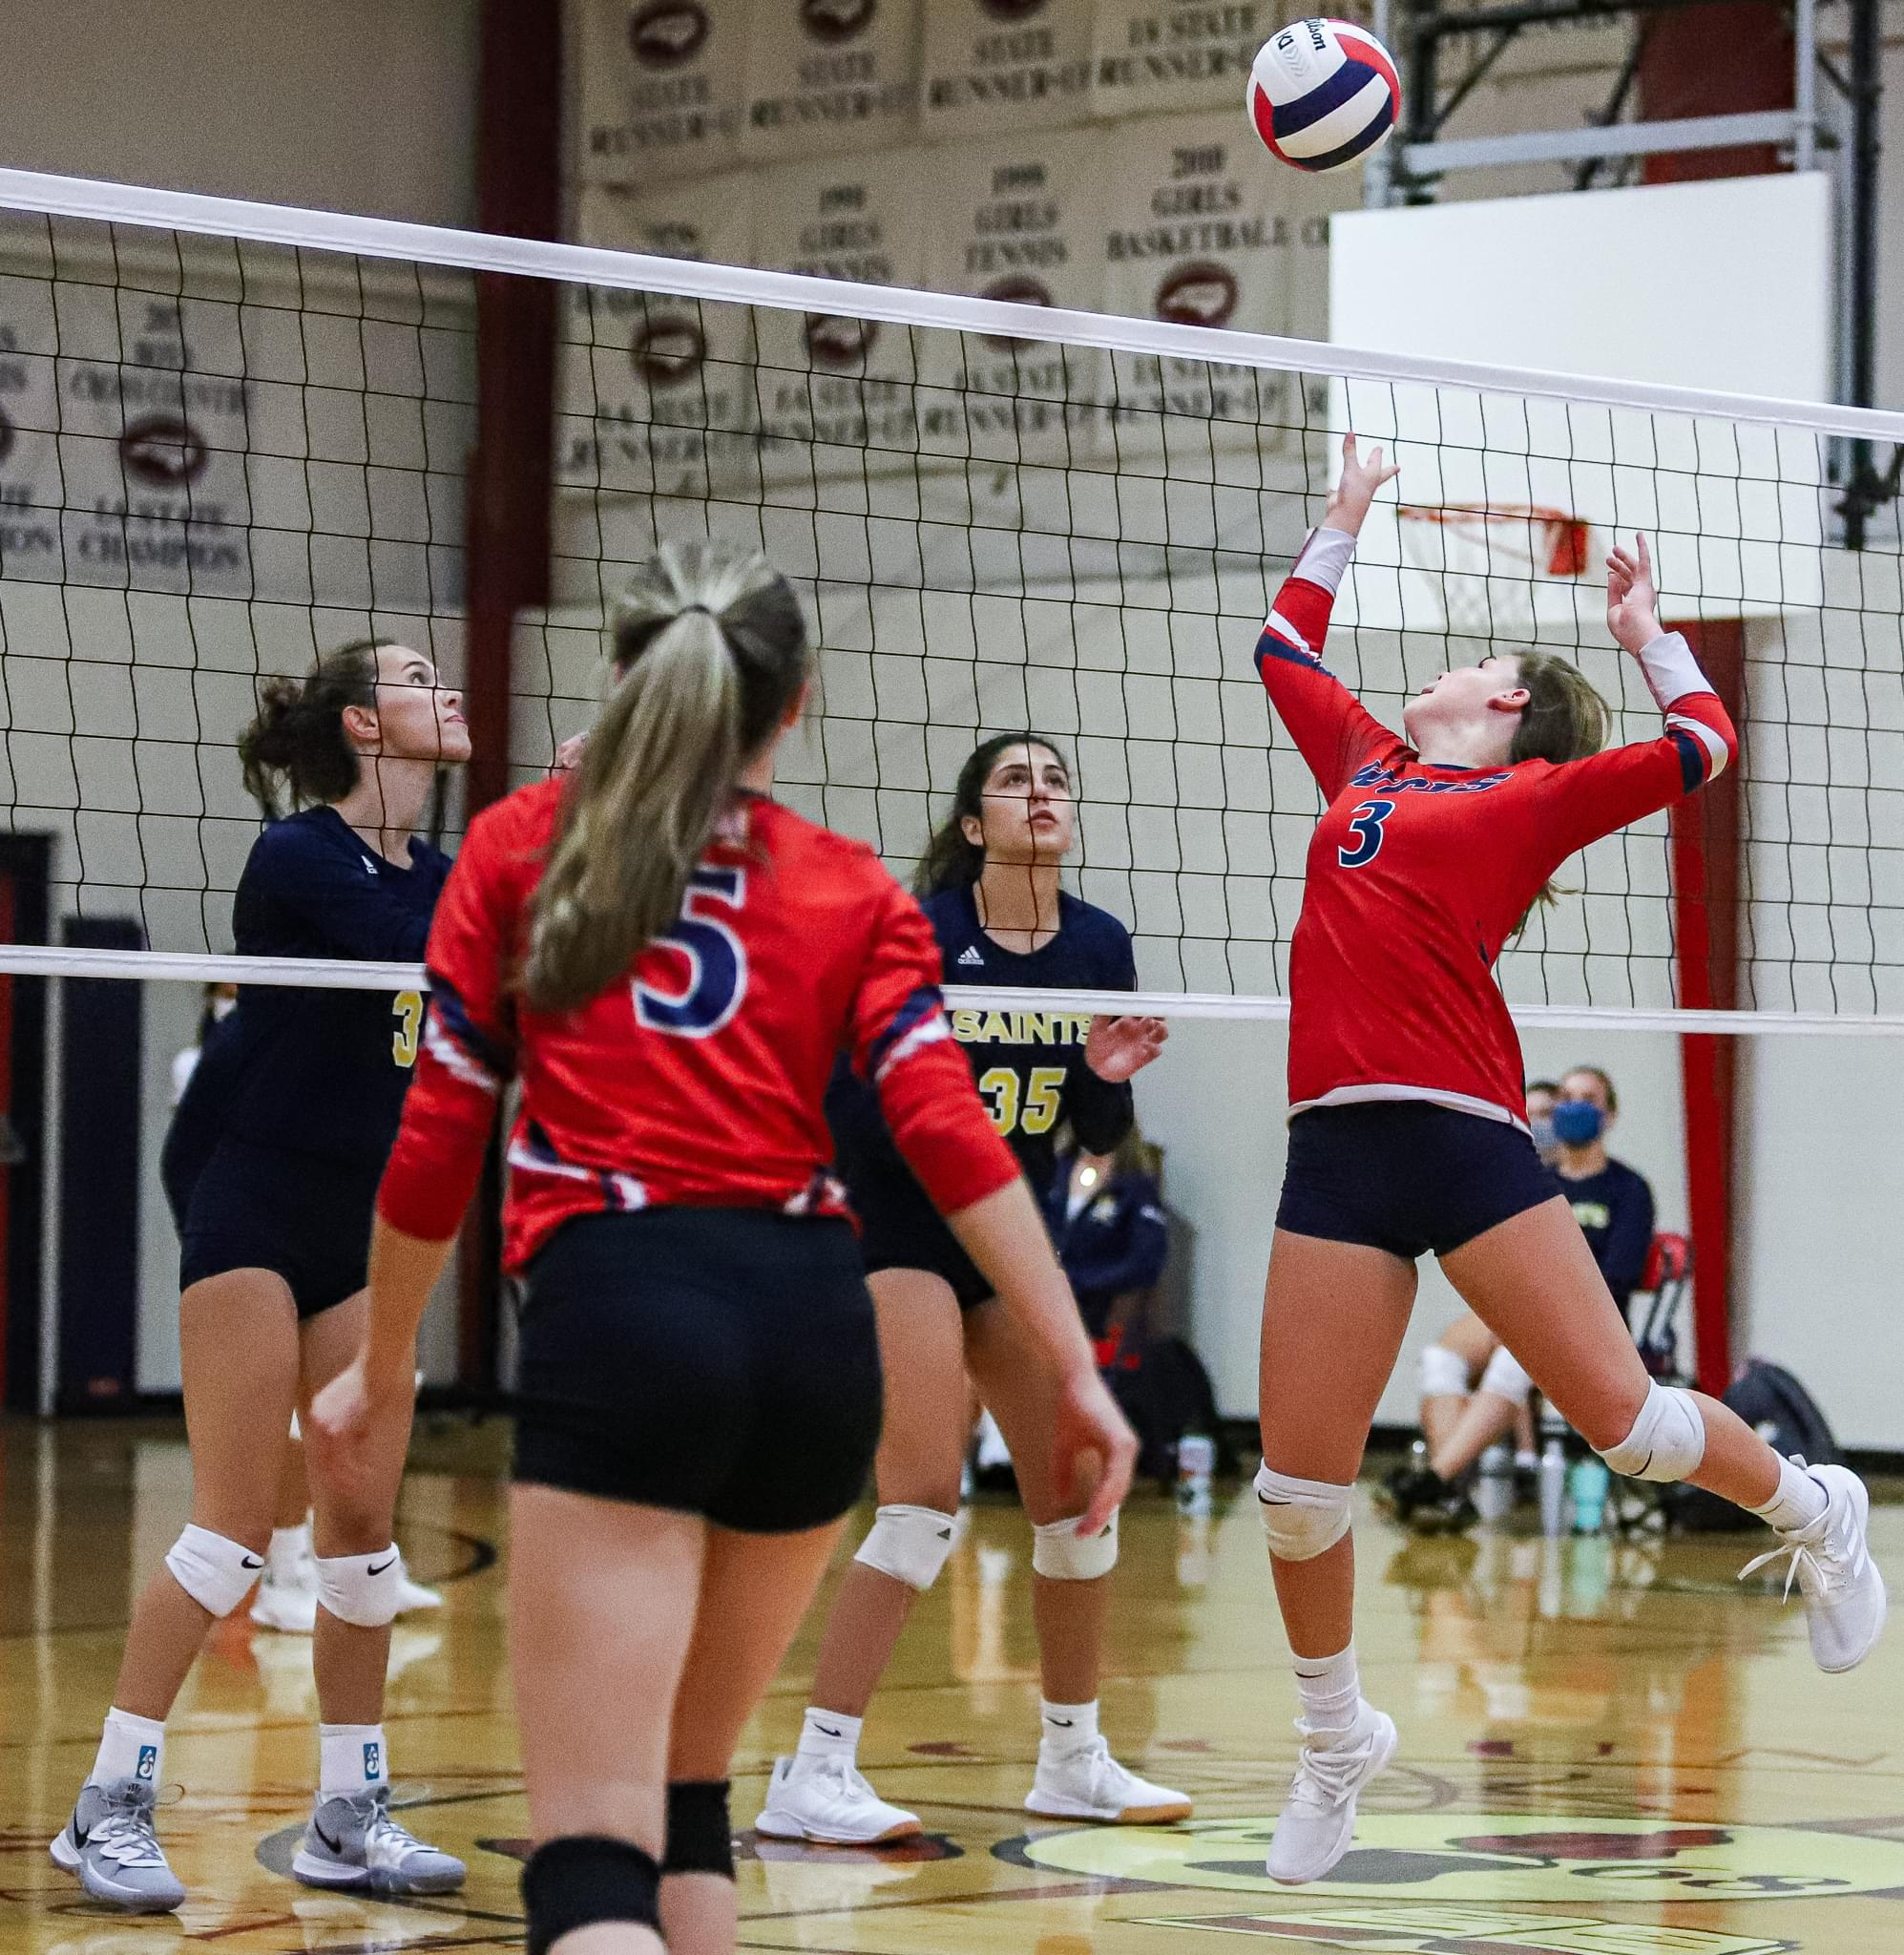 Chargers Fall To John Paul II In Volleyball (PHOTO GALLERY)